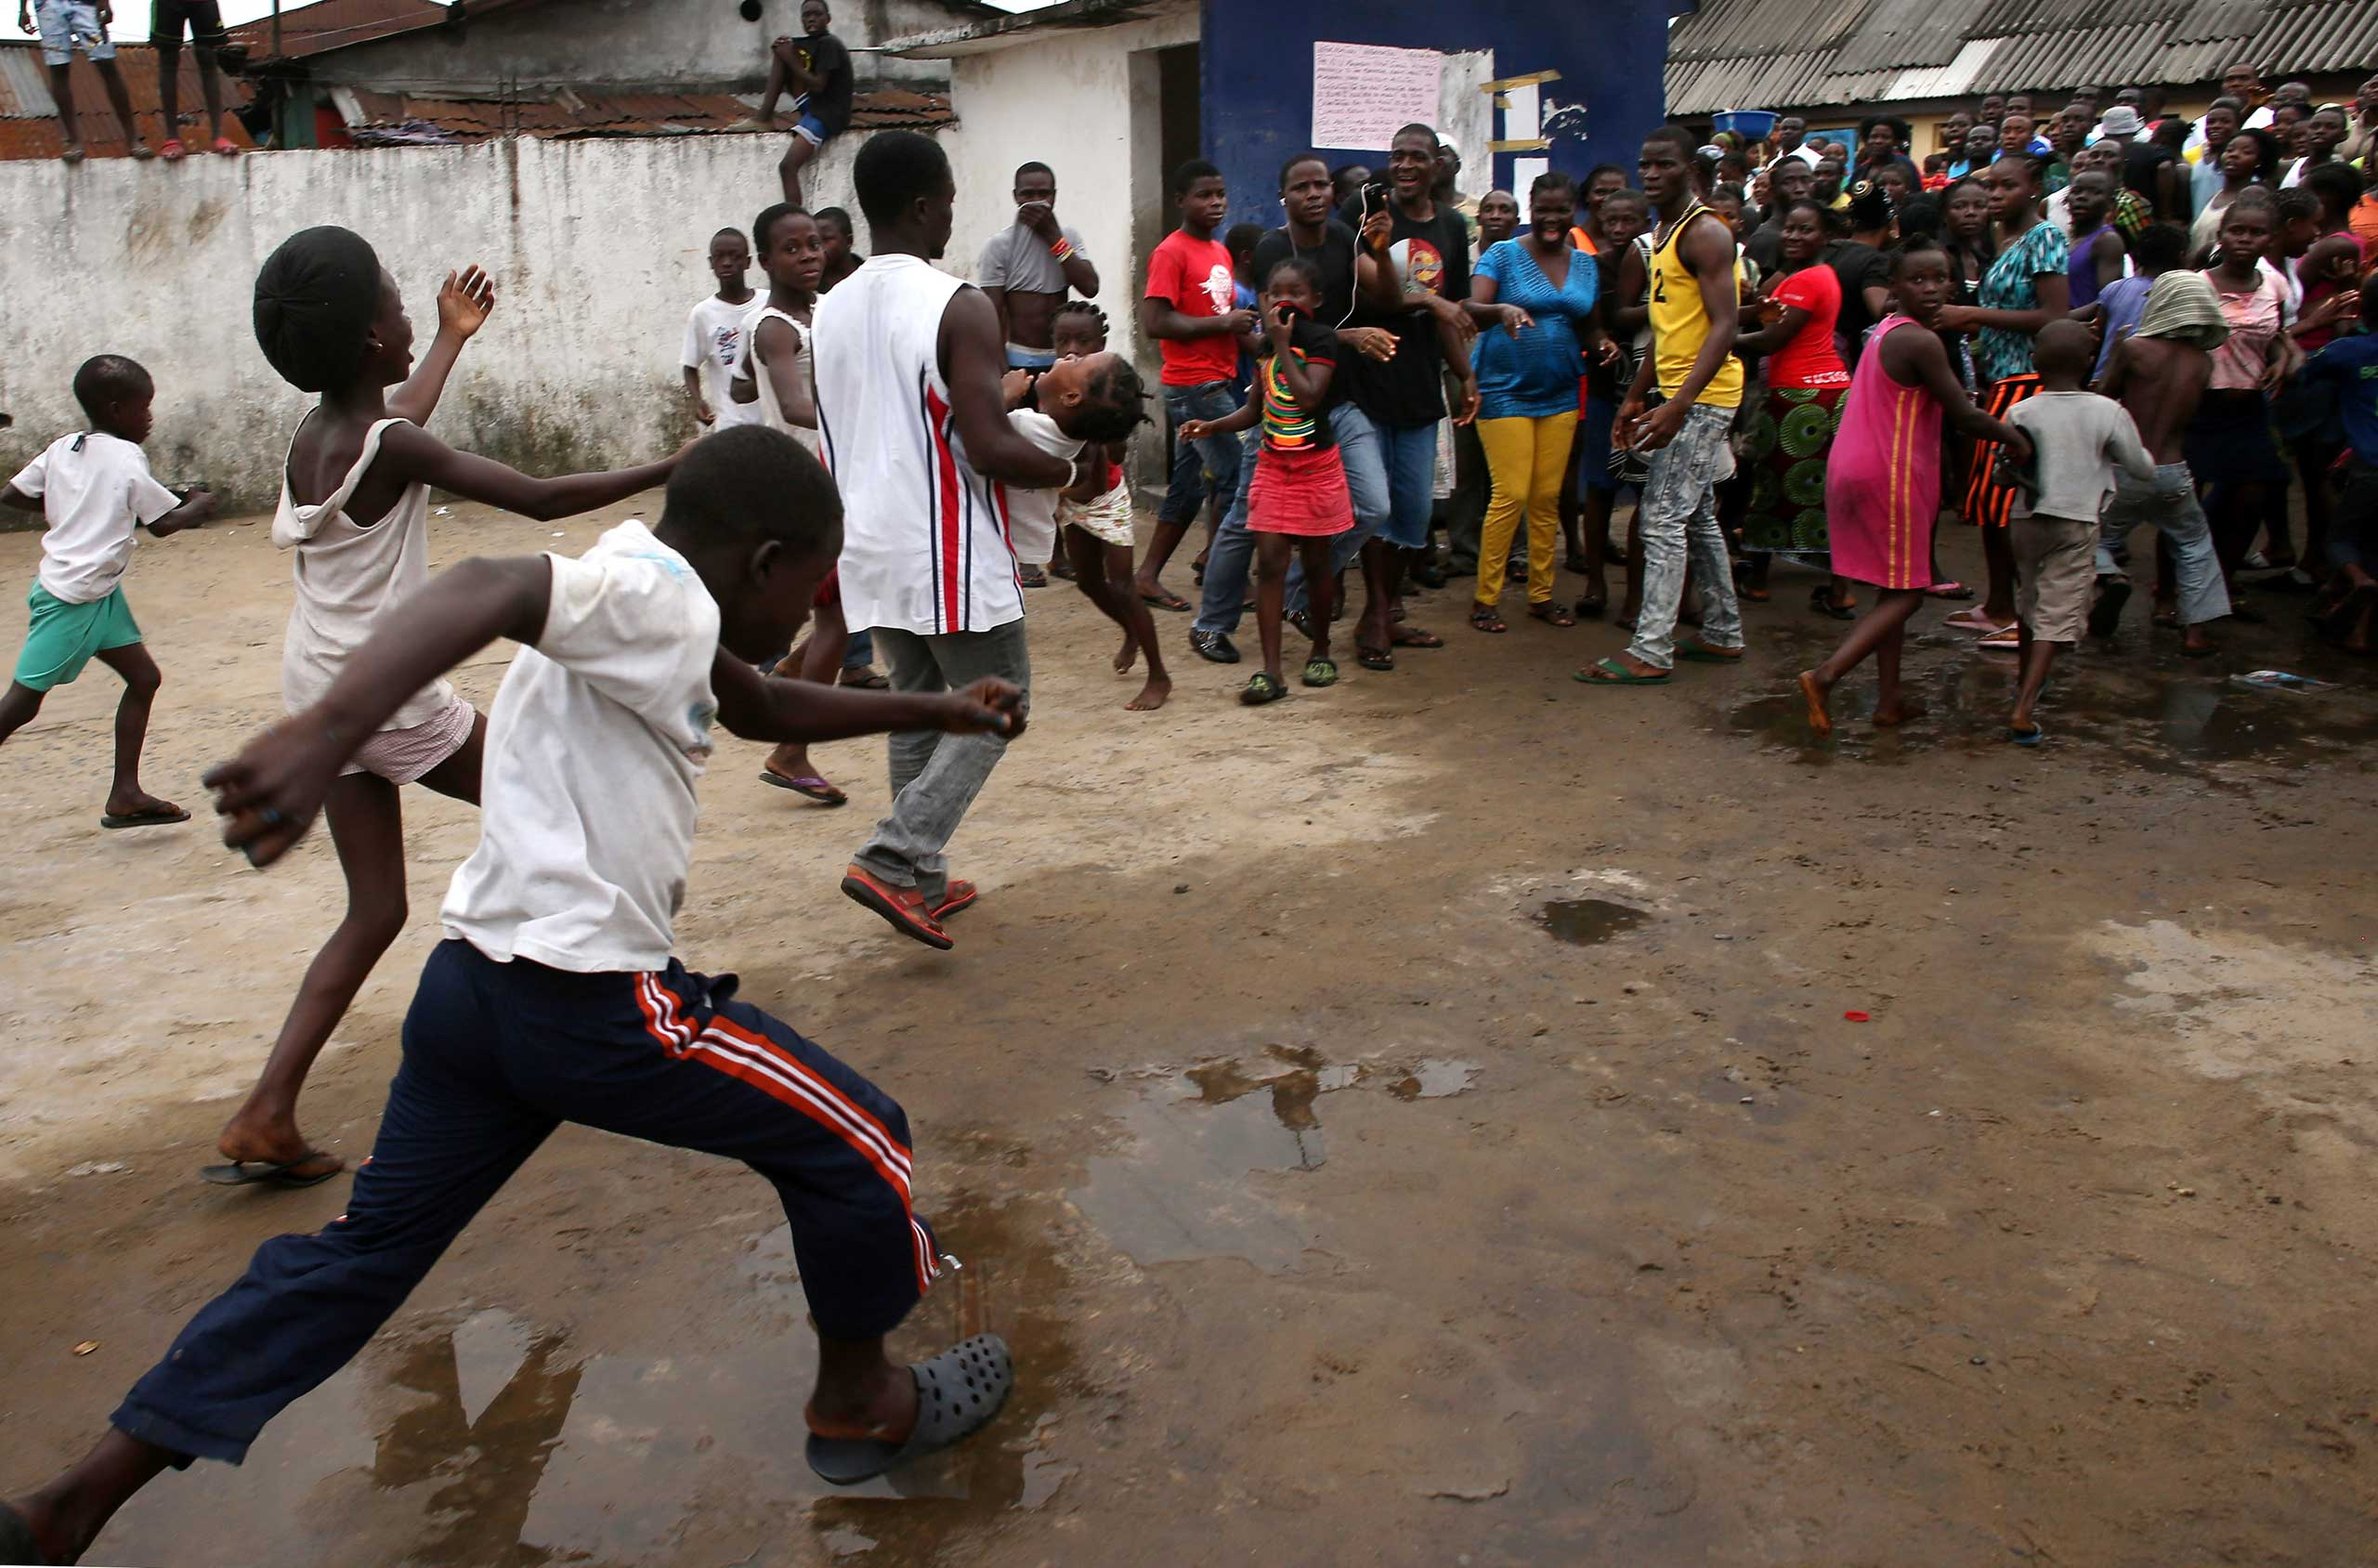 A man carries out a girl from an Ebola isolation center as a mob overruns the facility in the West Point slum on Aug. 16, 2014 in Monrovia.